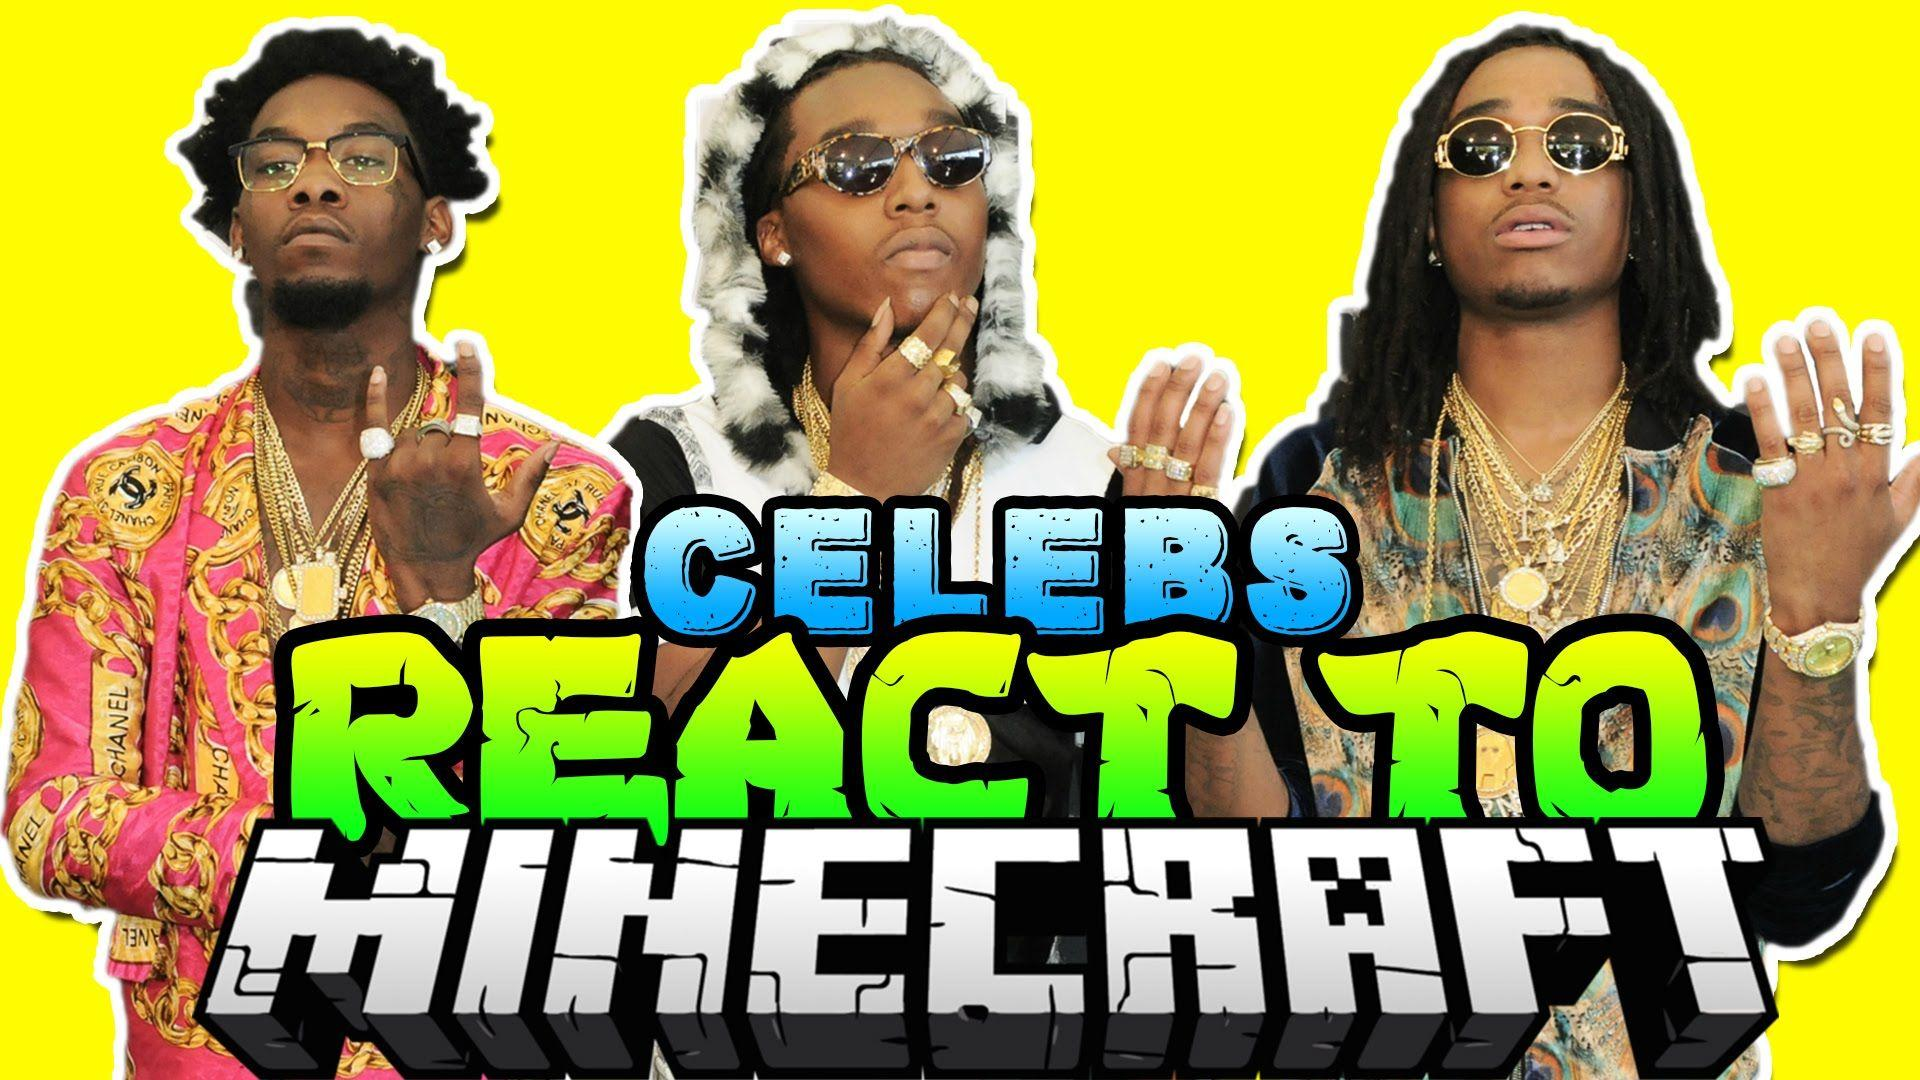 MIGOS REACTS TO MINECRAFT - YouTube